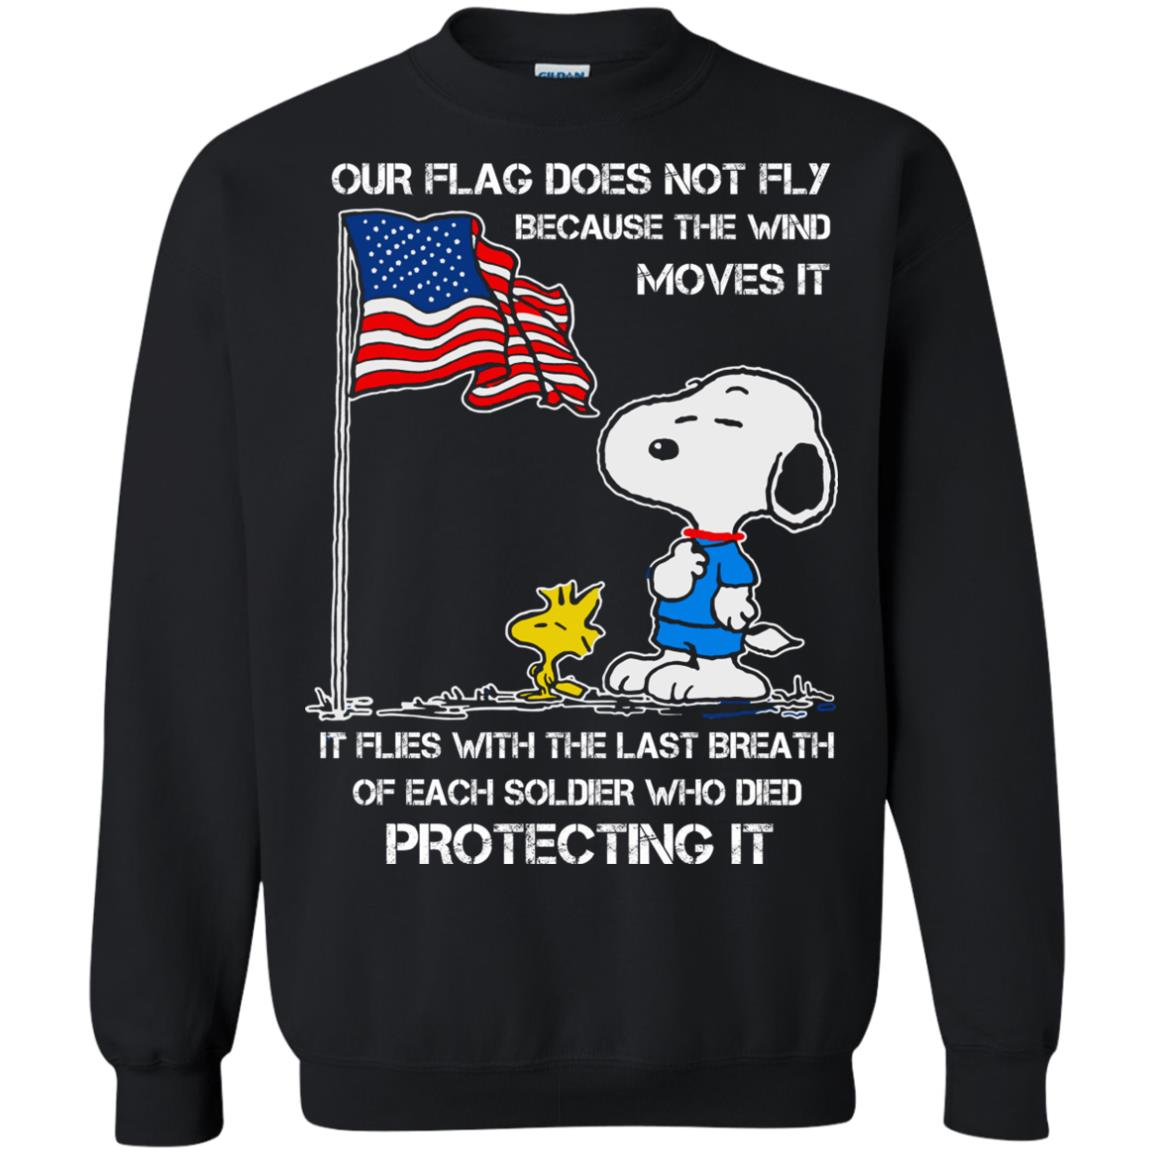 image 801 - Snoopy: Our flag does not fly because the wind moves it shirt, sweater